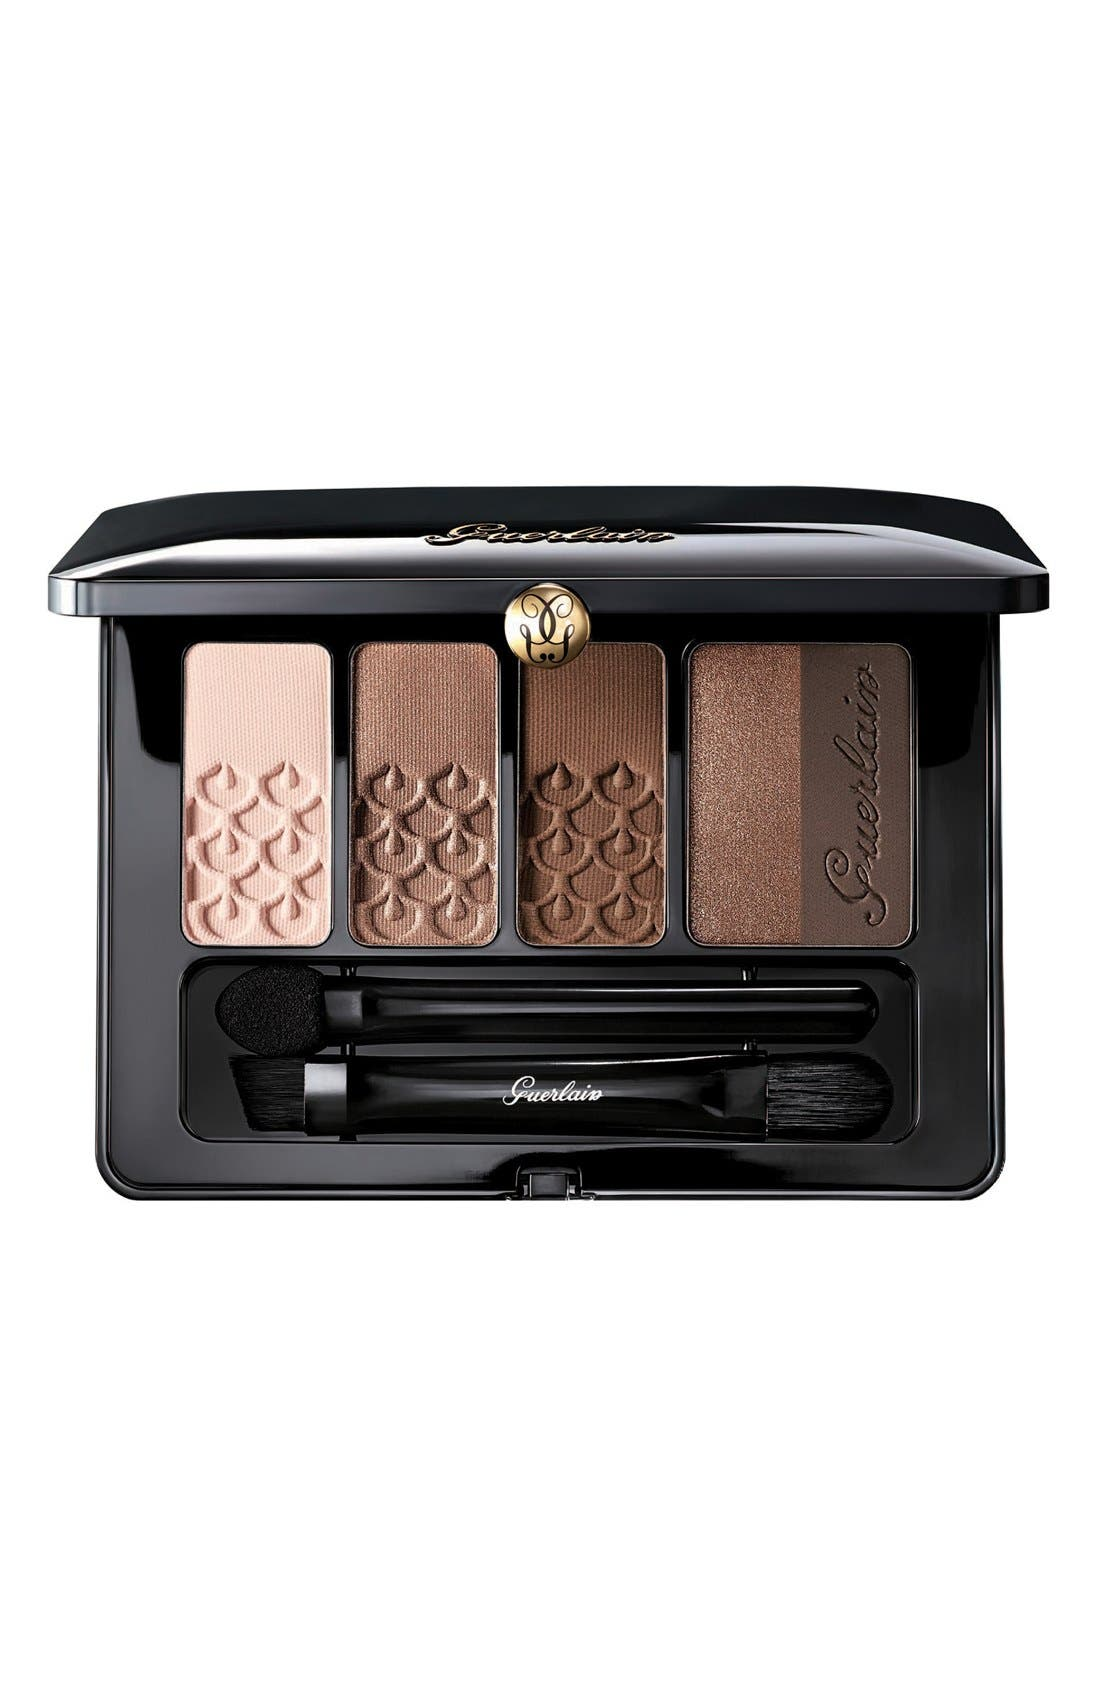 Guerlain '5 Couleurs' Eye Palette